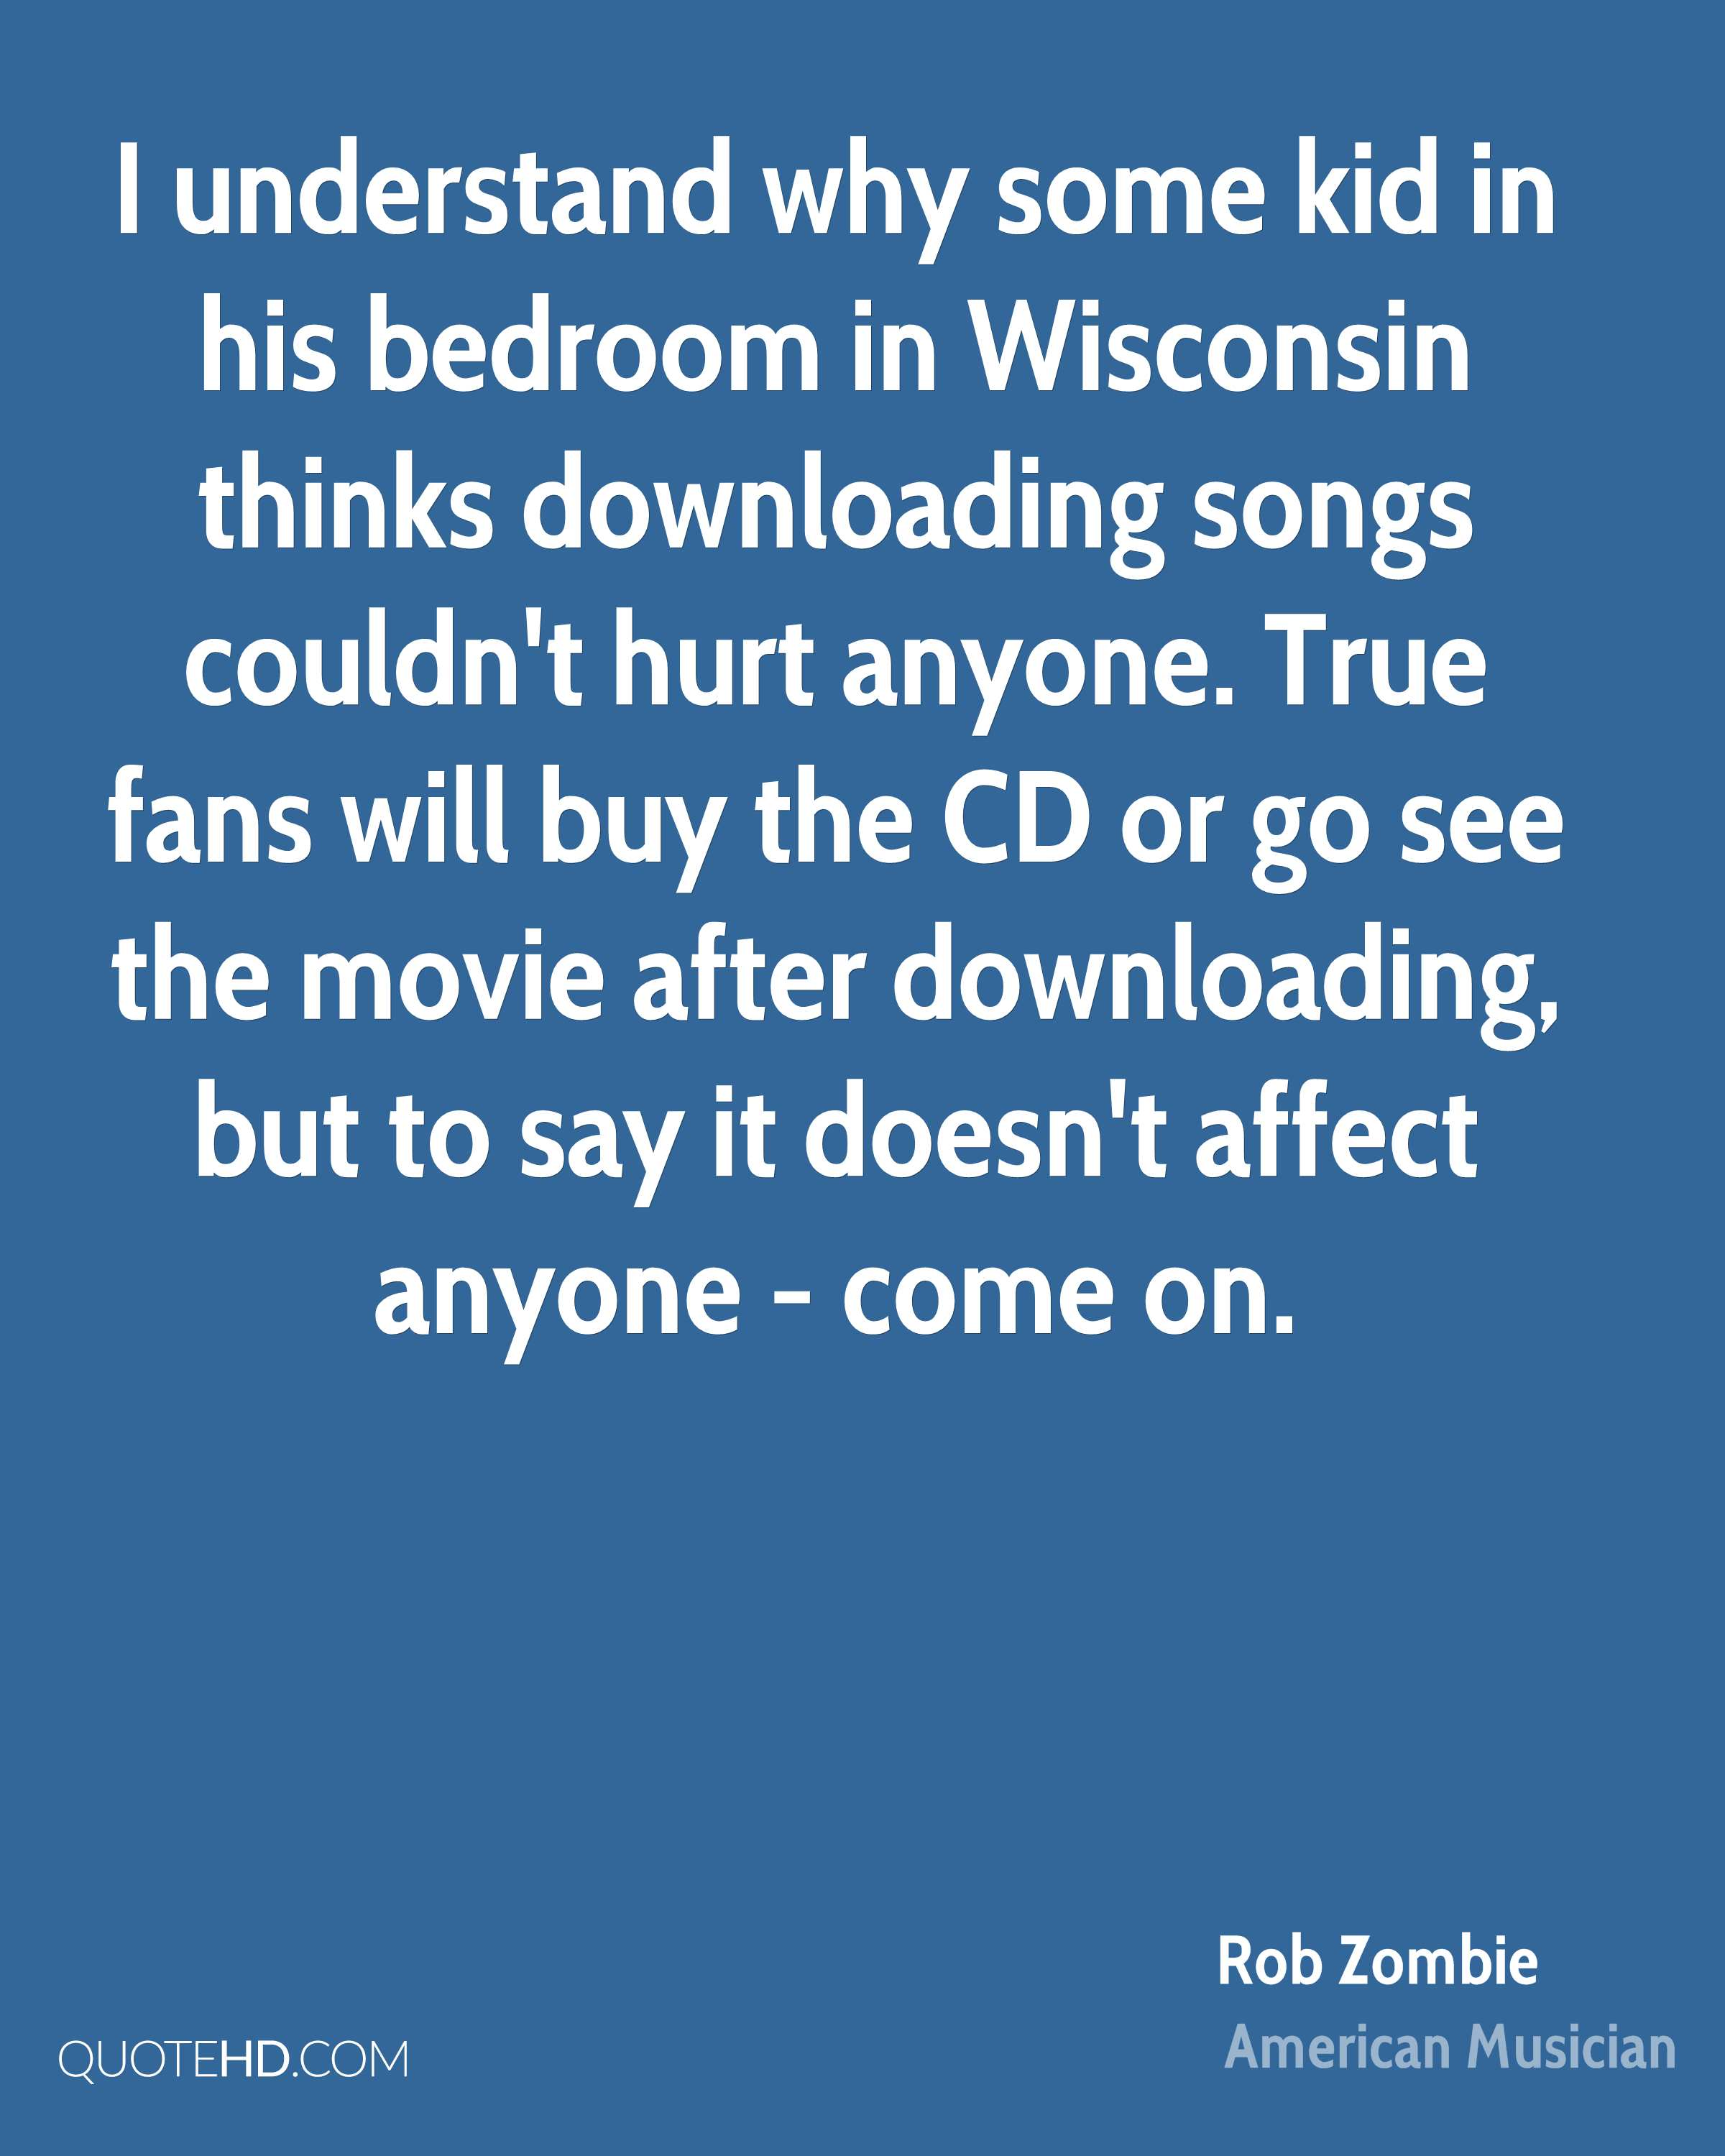 I understand why some kid in his bedroom in Wisconsin thinks downloading songs couldn't hurt anyone. True fans will buy the CD or go see the movie after downloading, but to say it doesn't affect anyone - come on.